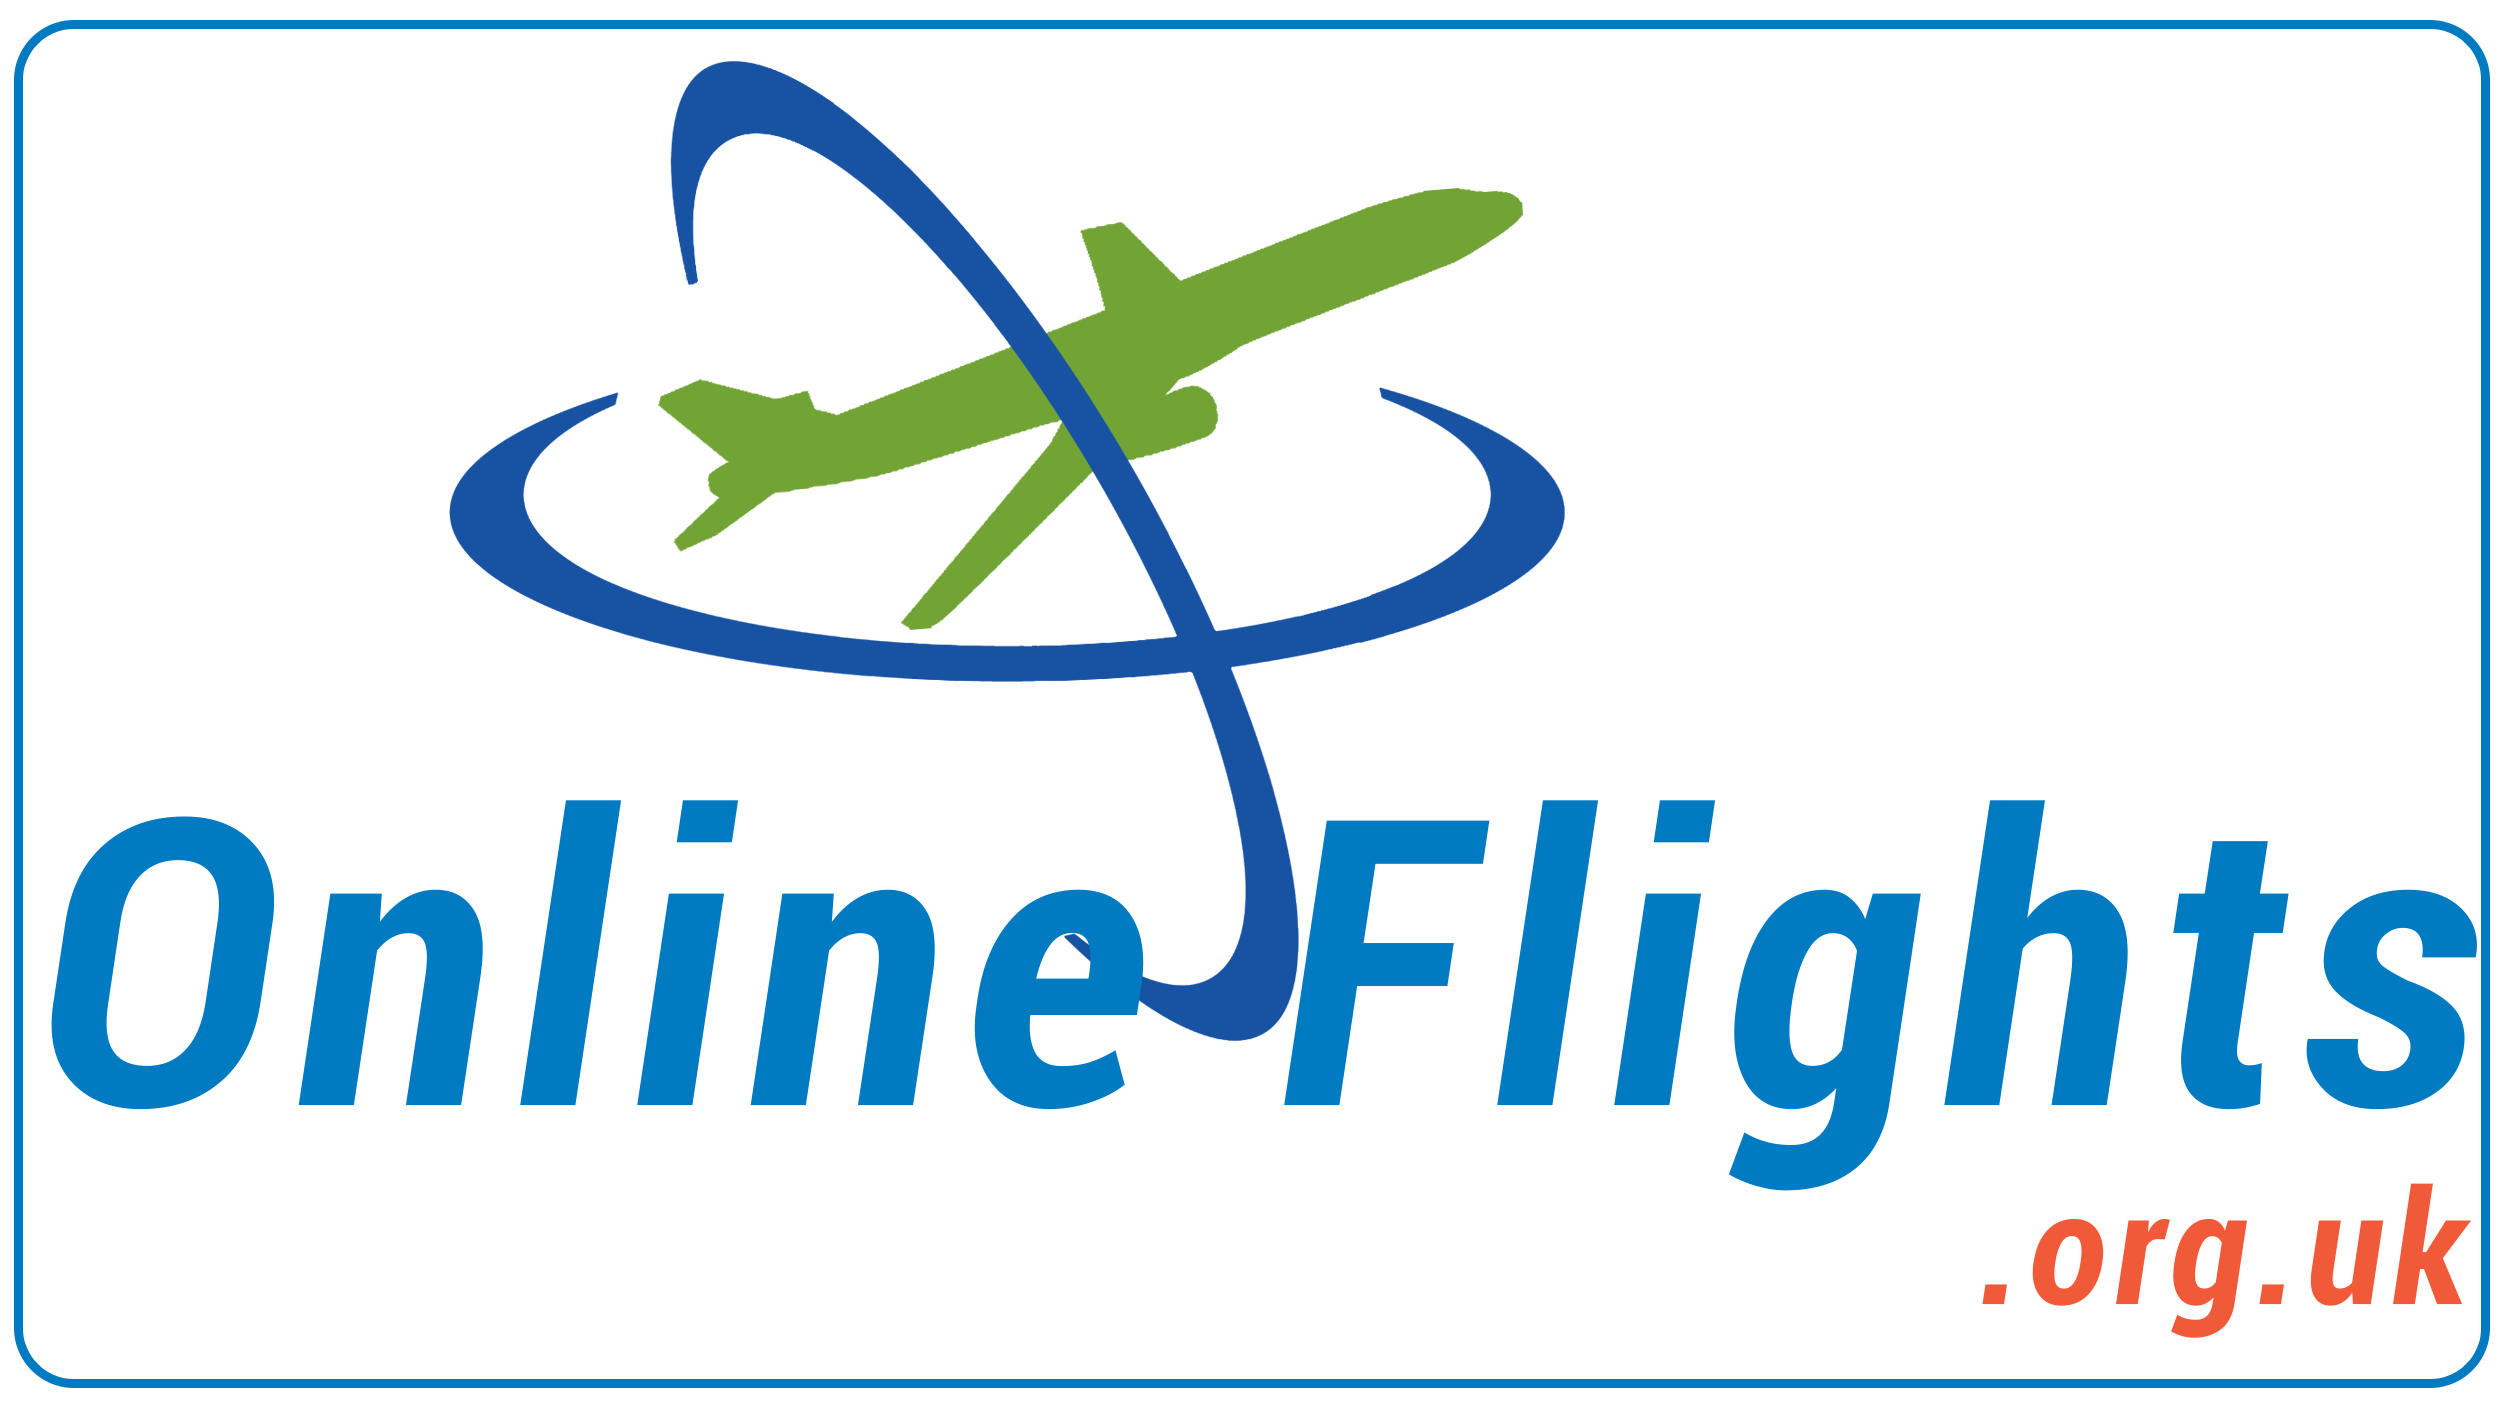 Online Flights UK